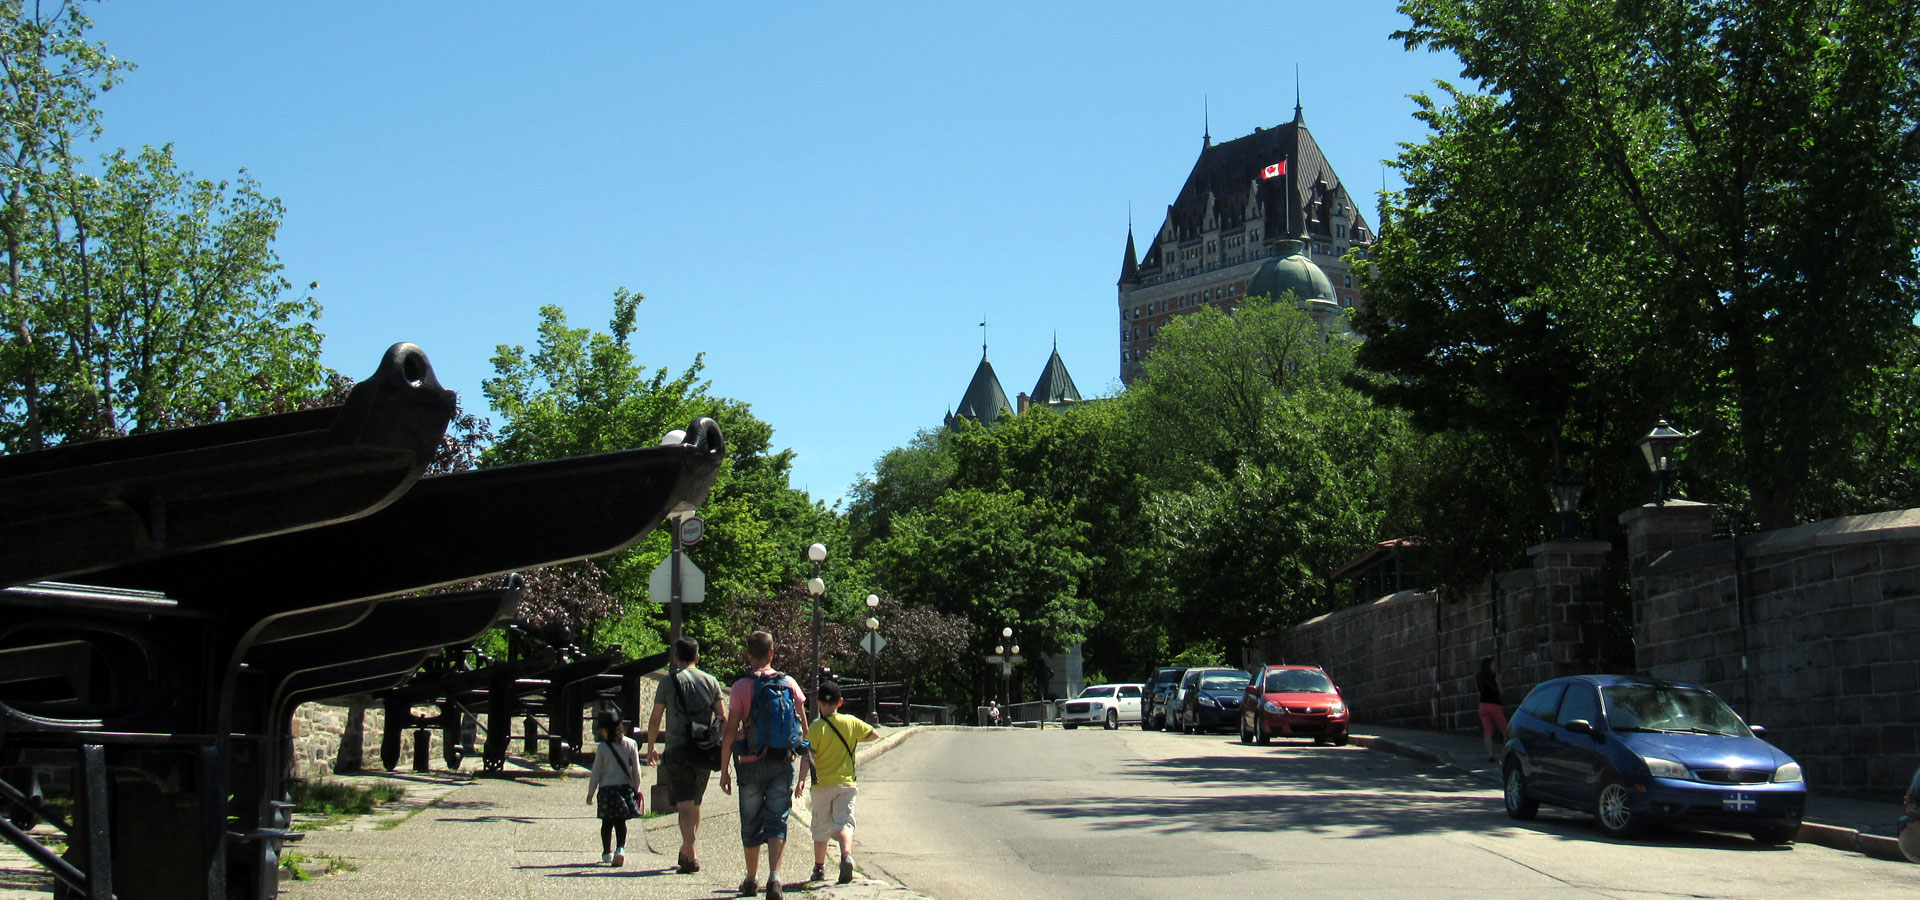 Quebec City is a very walkable city!